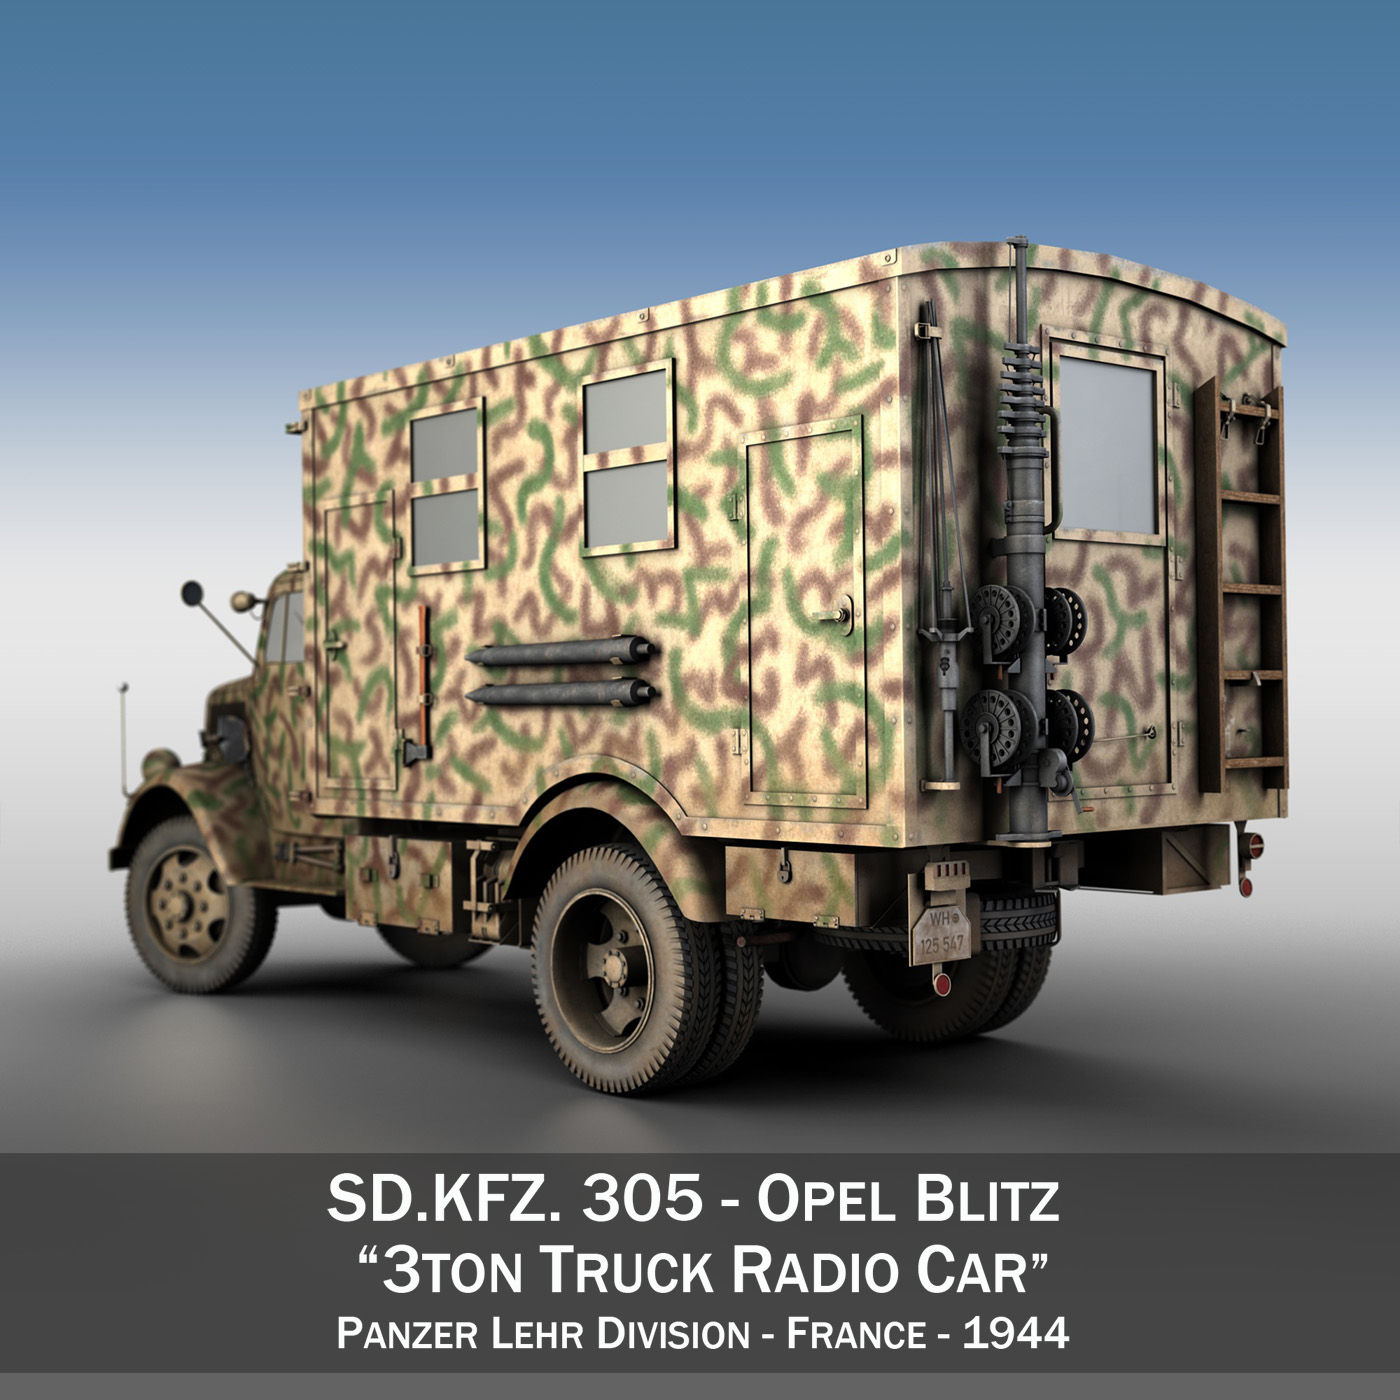 opel blitz – 3t truck with radiokoffer 3d model 3ds c4d fbx lwo lw lws obj 265977